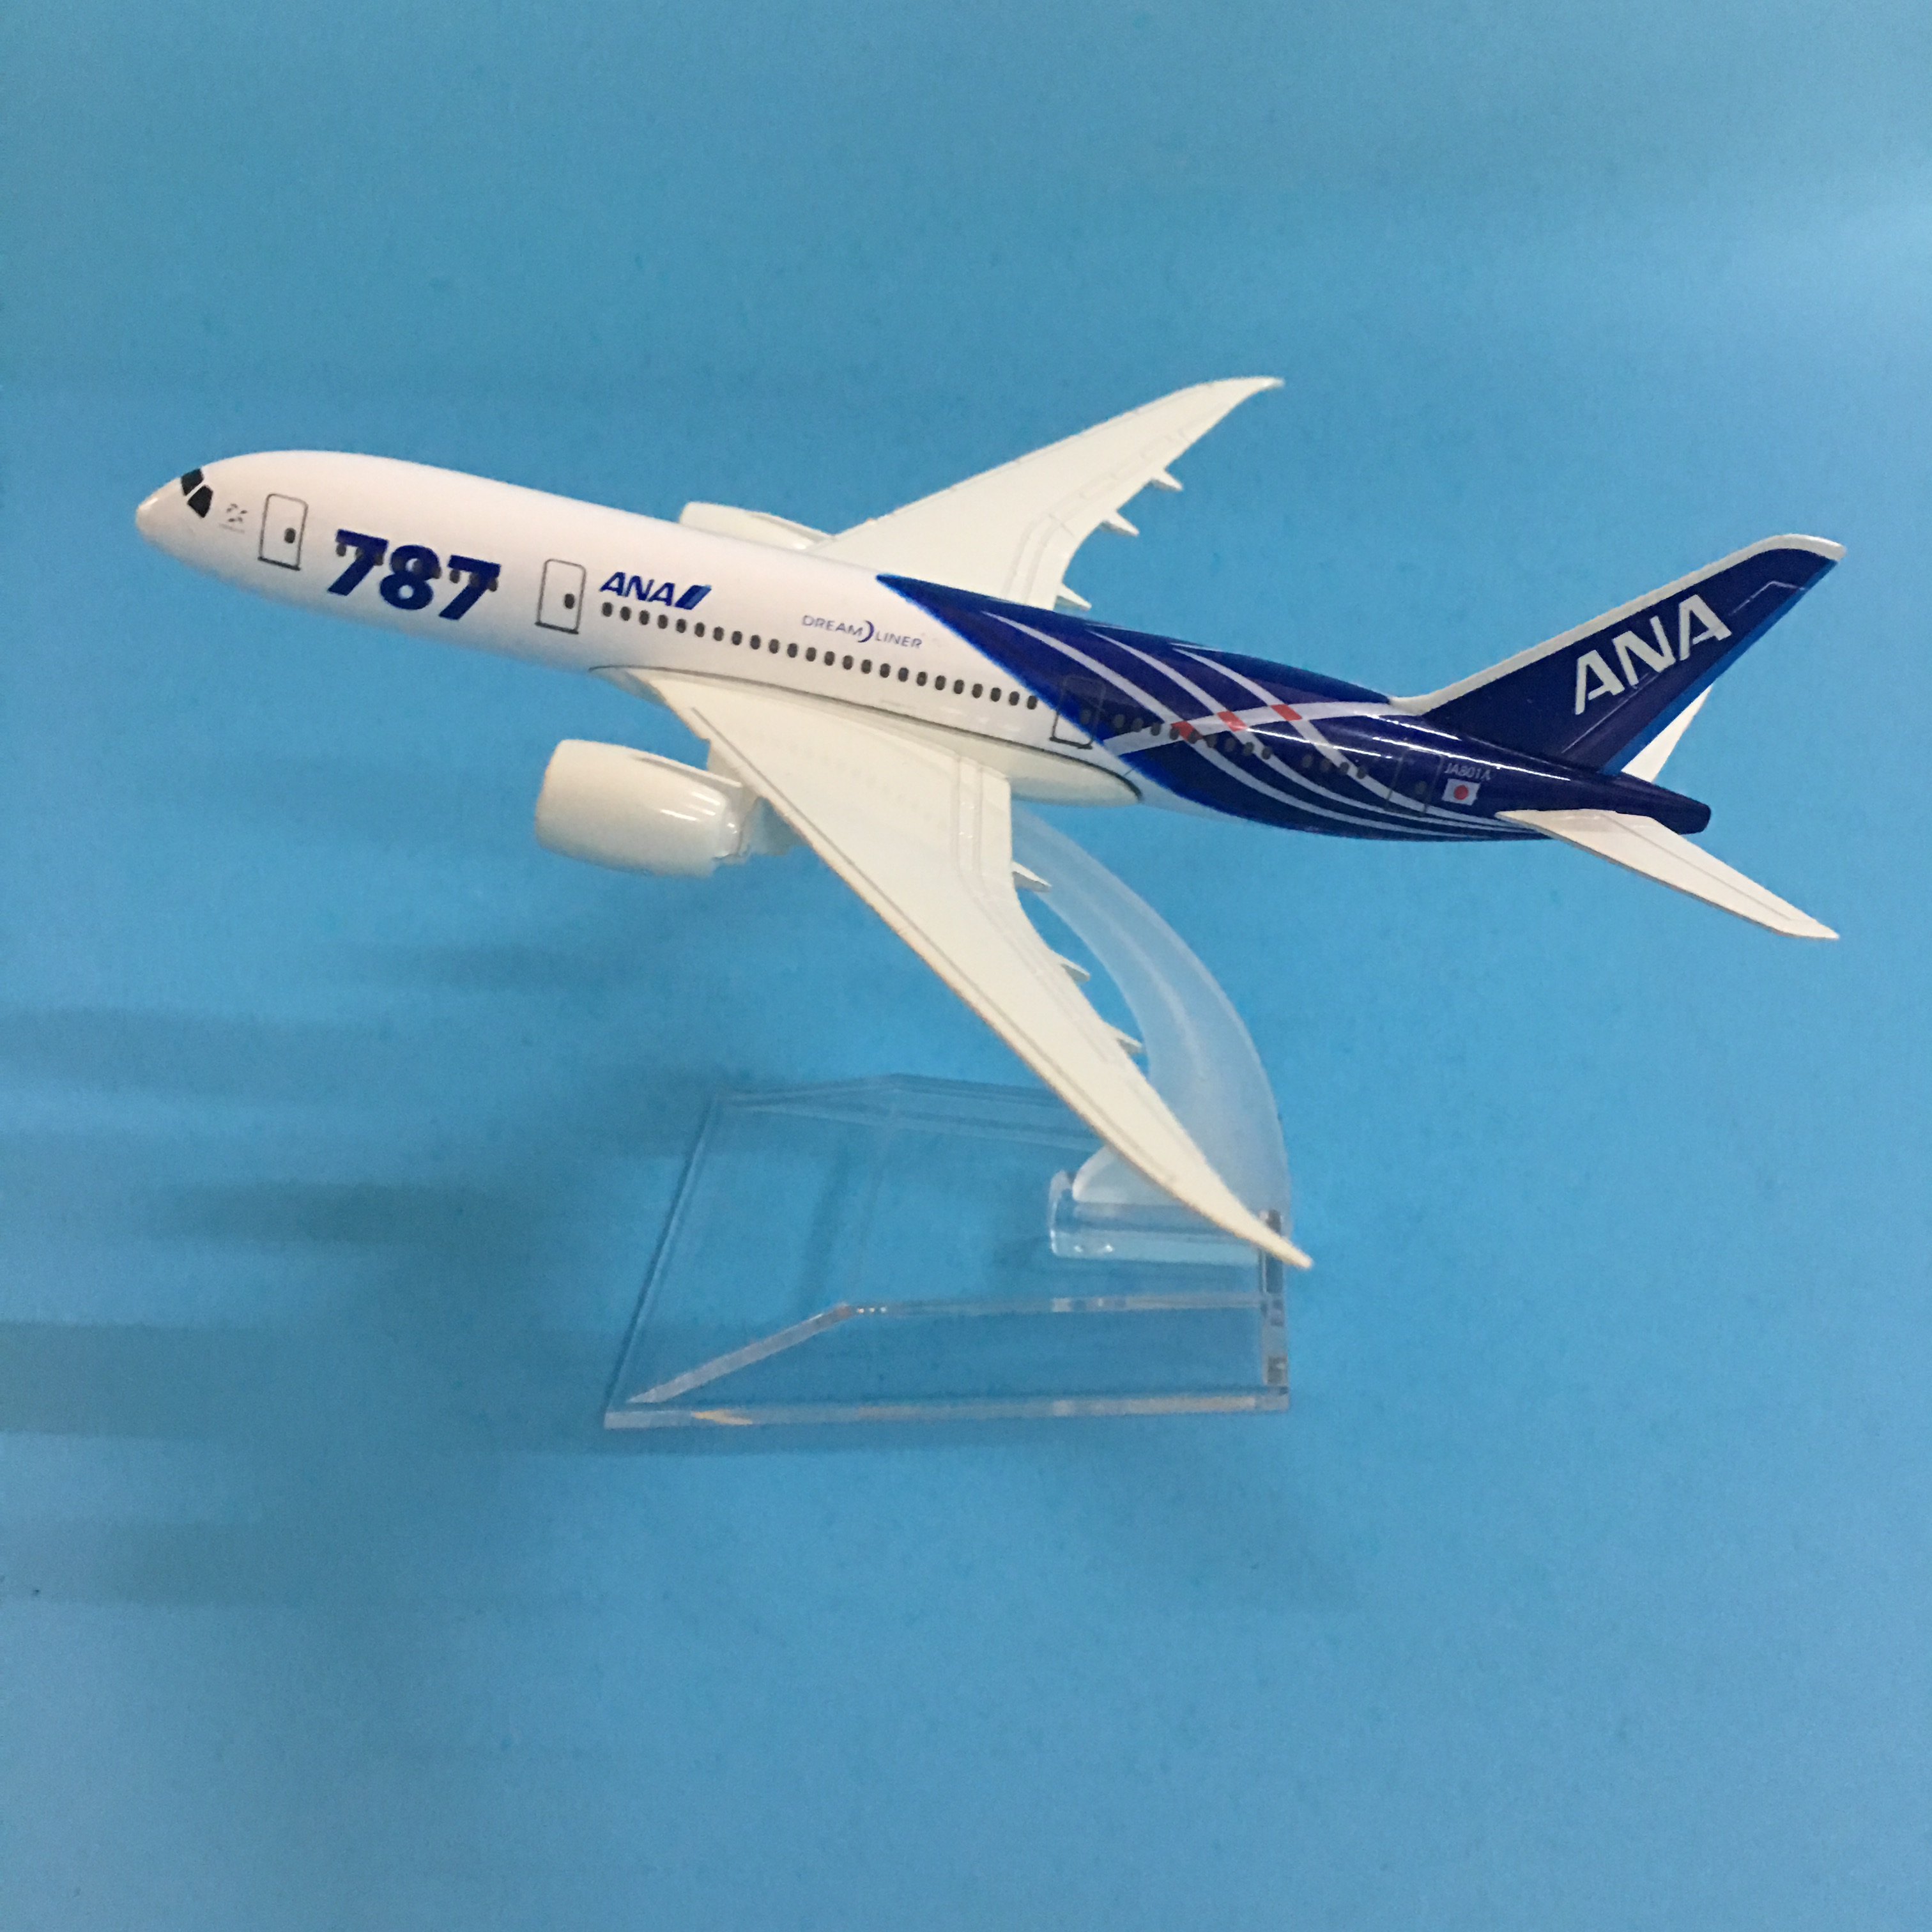 JASON TUTU 16cm Plane Model Airplane Model JAPAN AIR ANA Boeing 787 Aircraft Model 1:400 Diecast Metal Airplanes Plane Toy Gift image